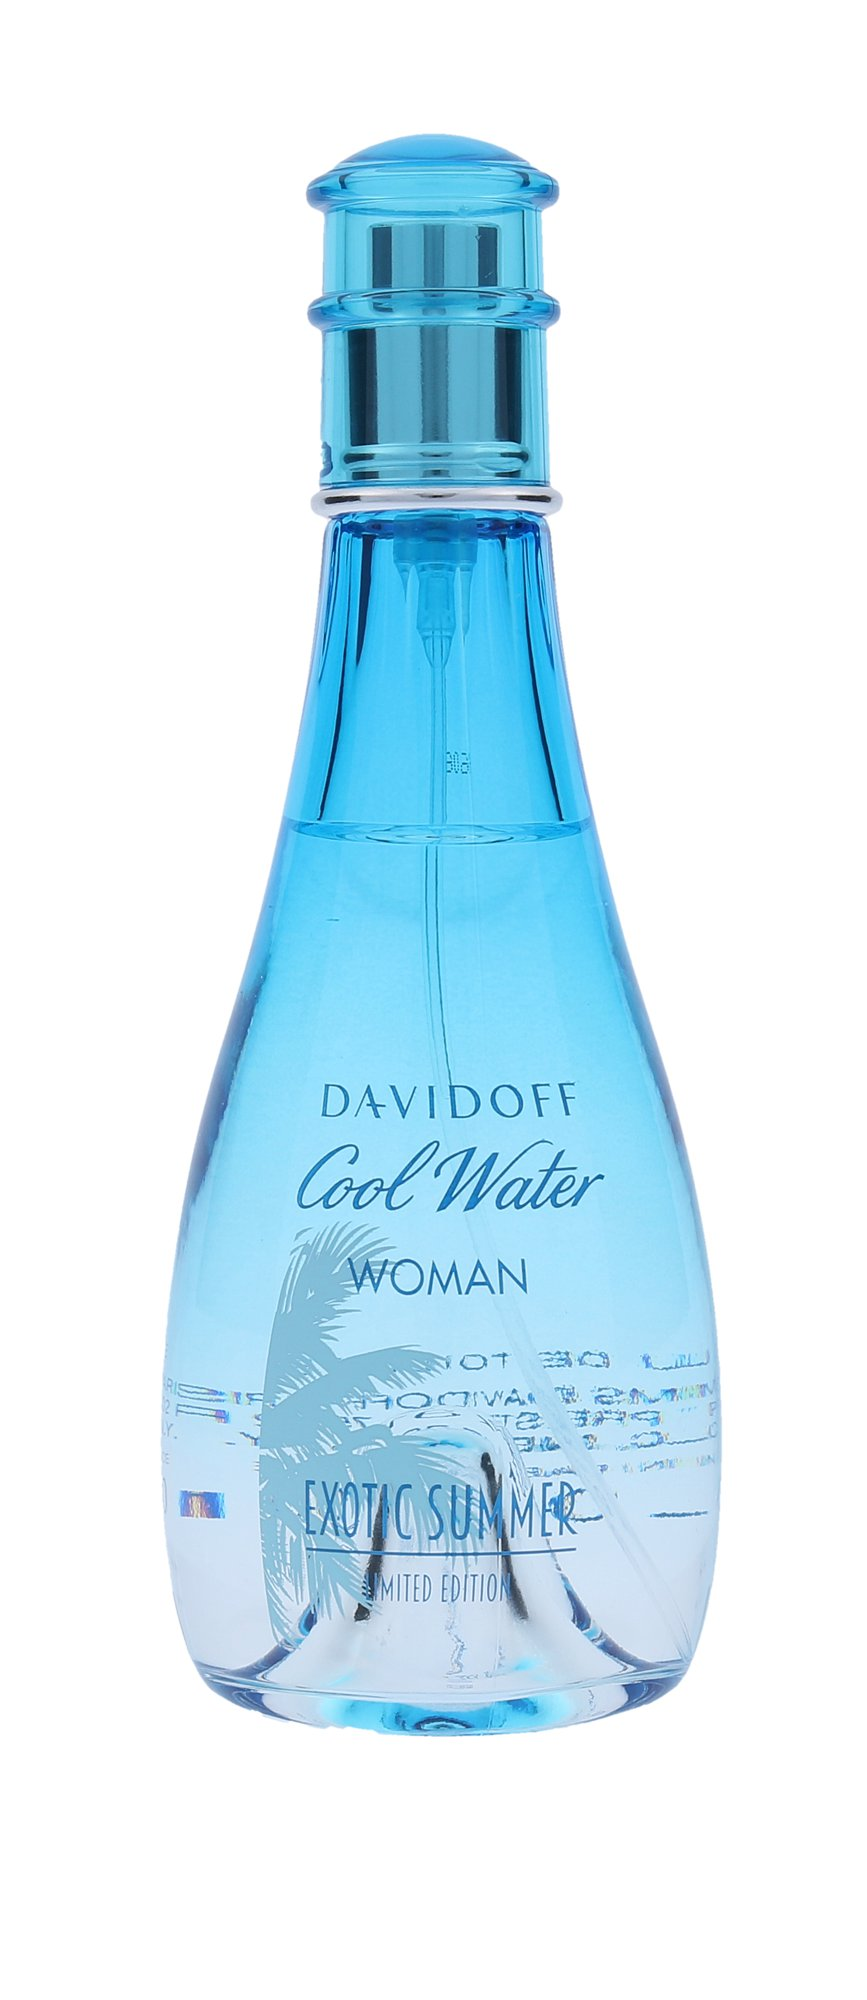 Davidoff Cool Water Exotic Summer, edt 80ml - Teszter